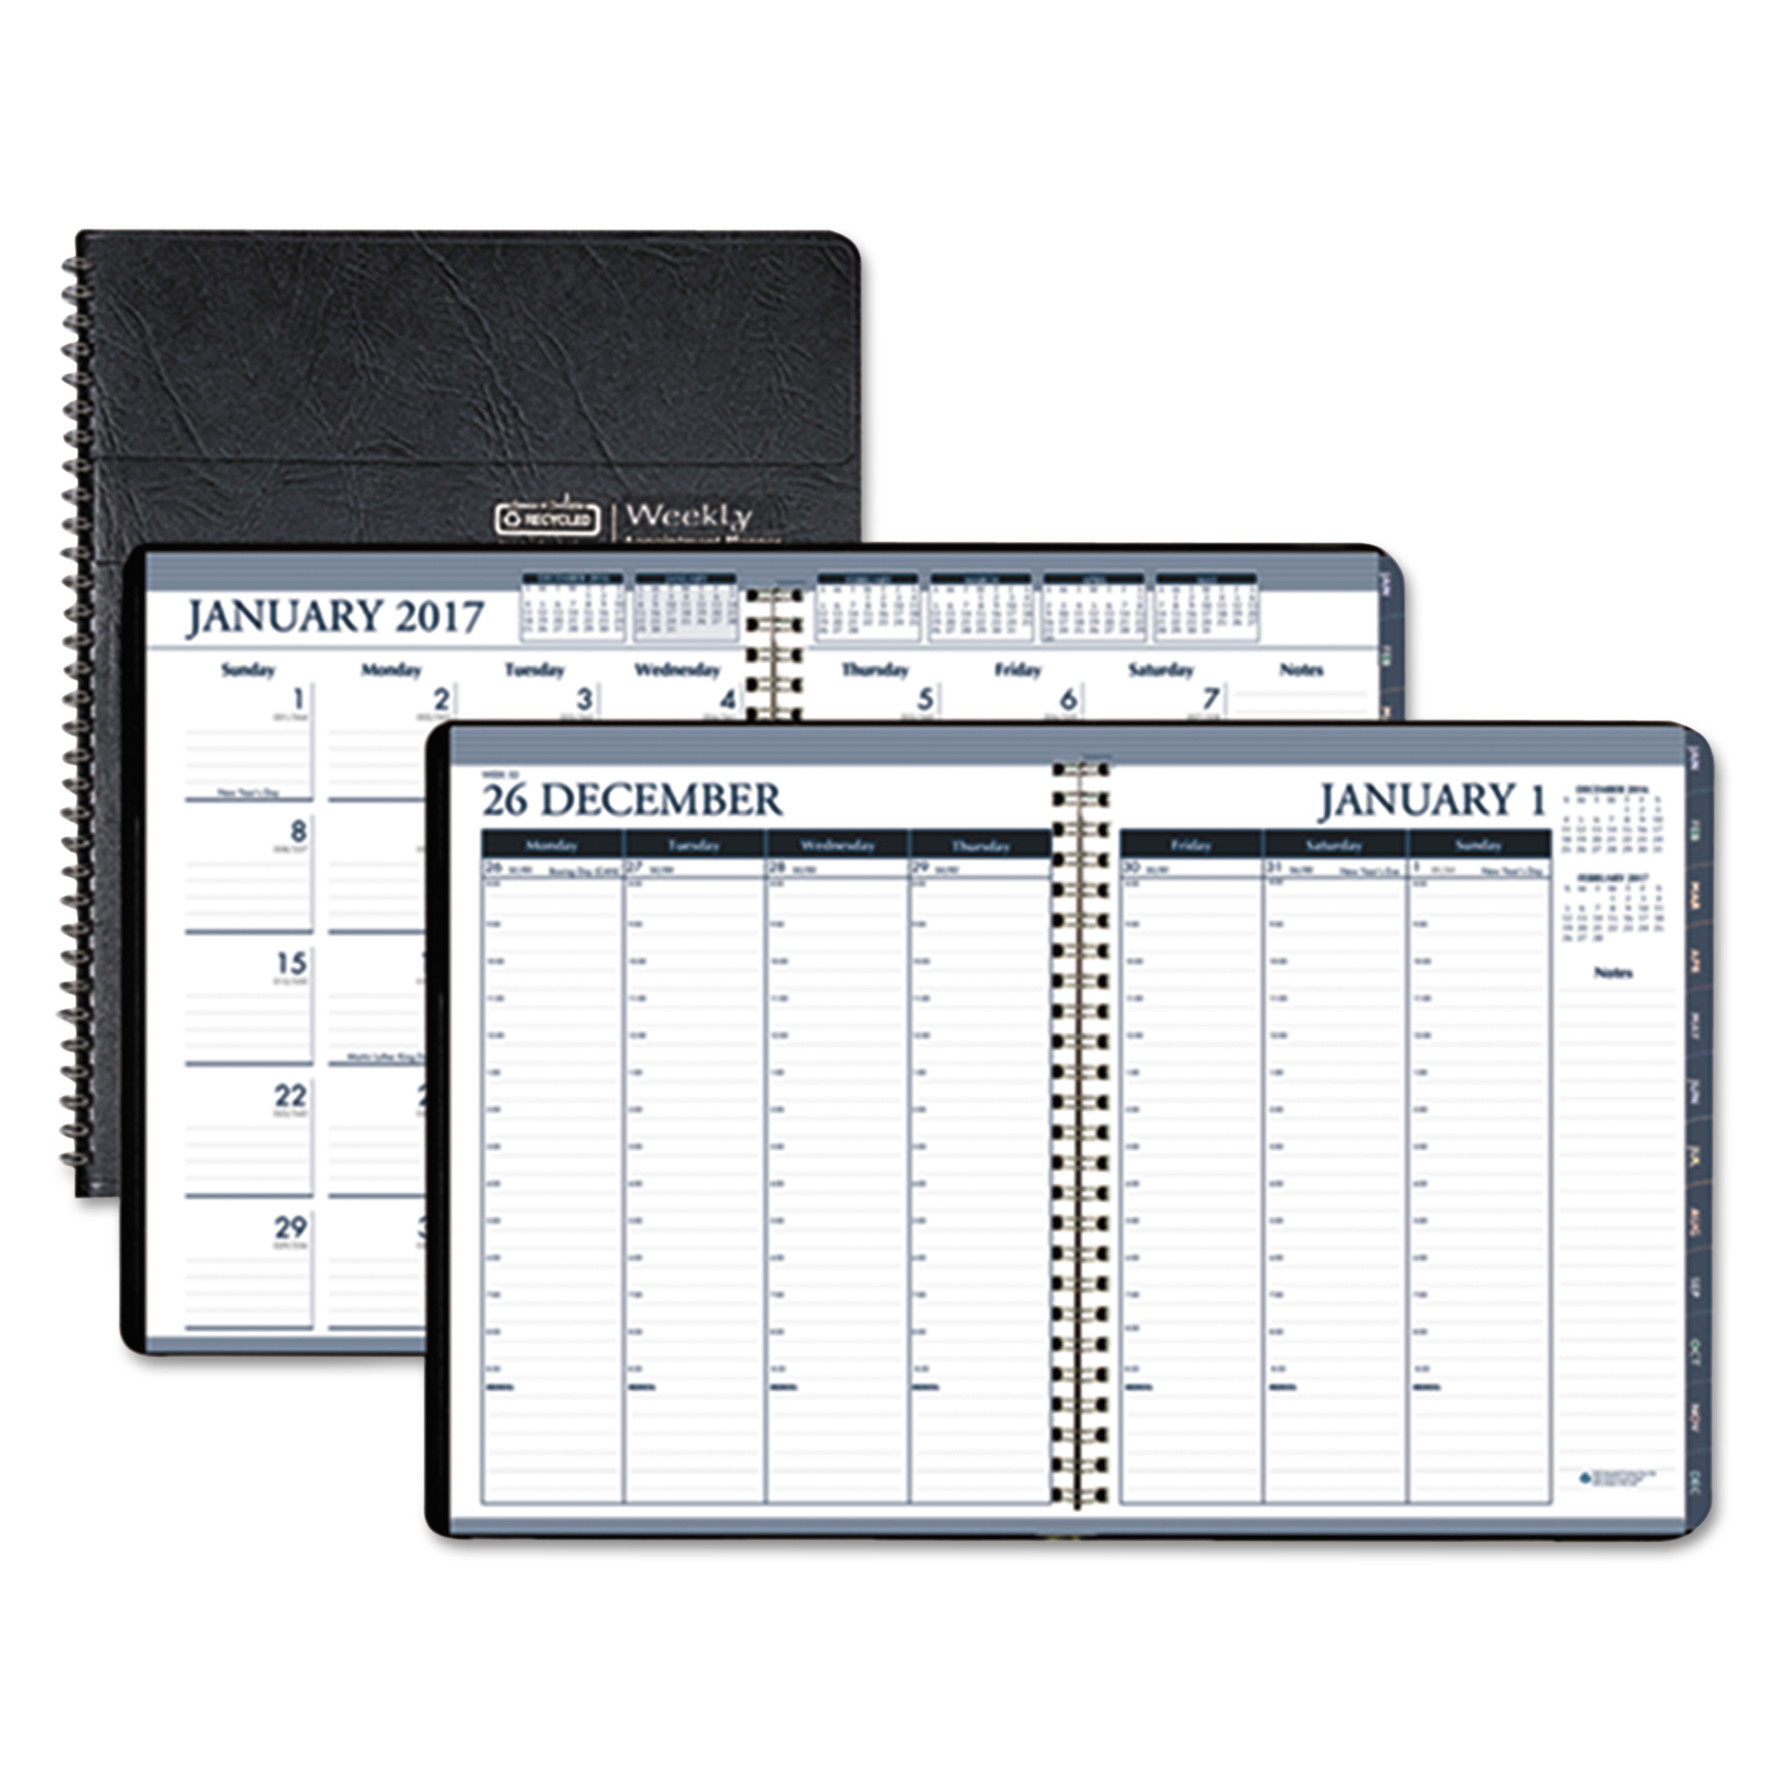 Recycled Wirebound Weekly/Monthly Planner, 8 1/2 x 11, Black Leatherette, 2017